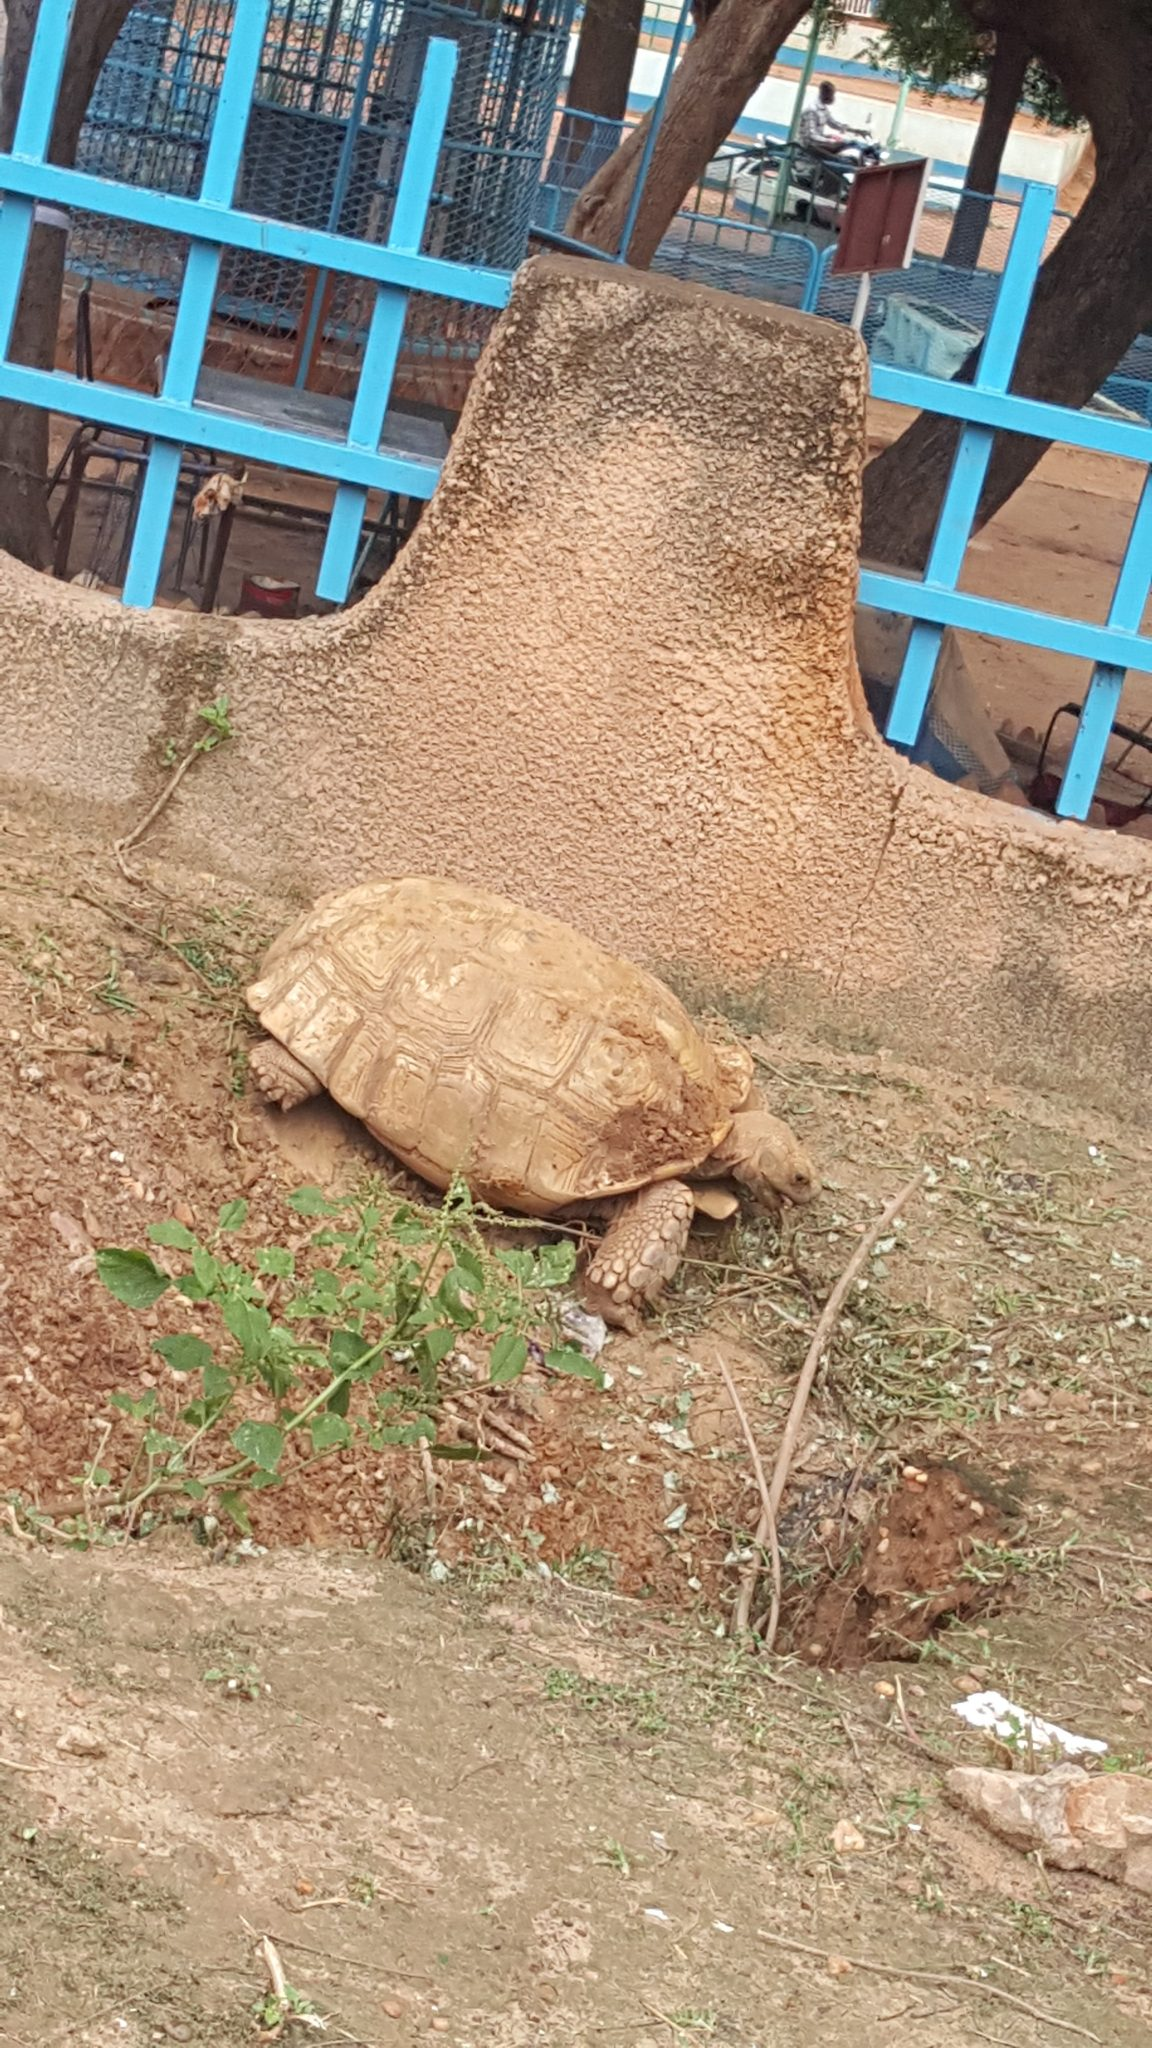 A tortoise at the zoo